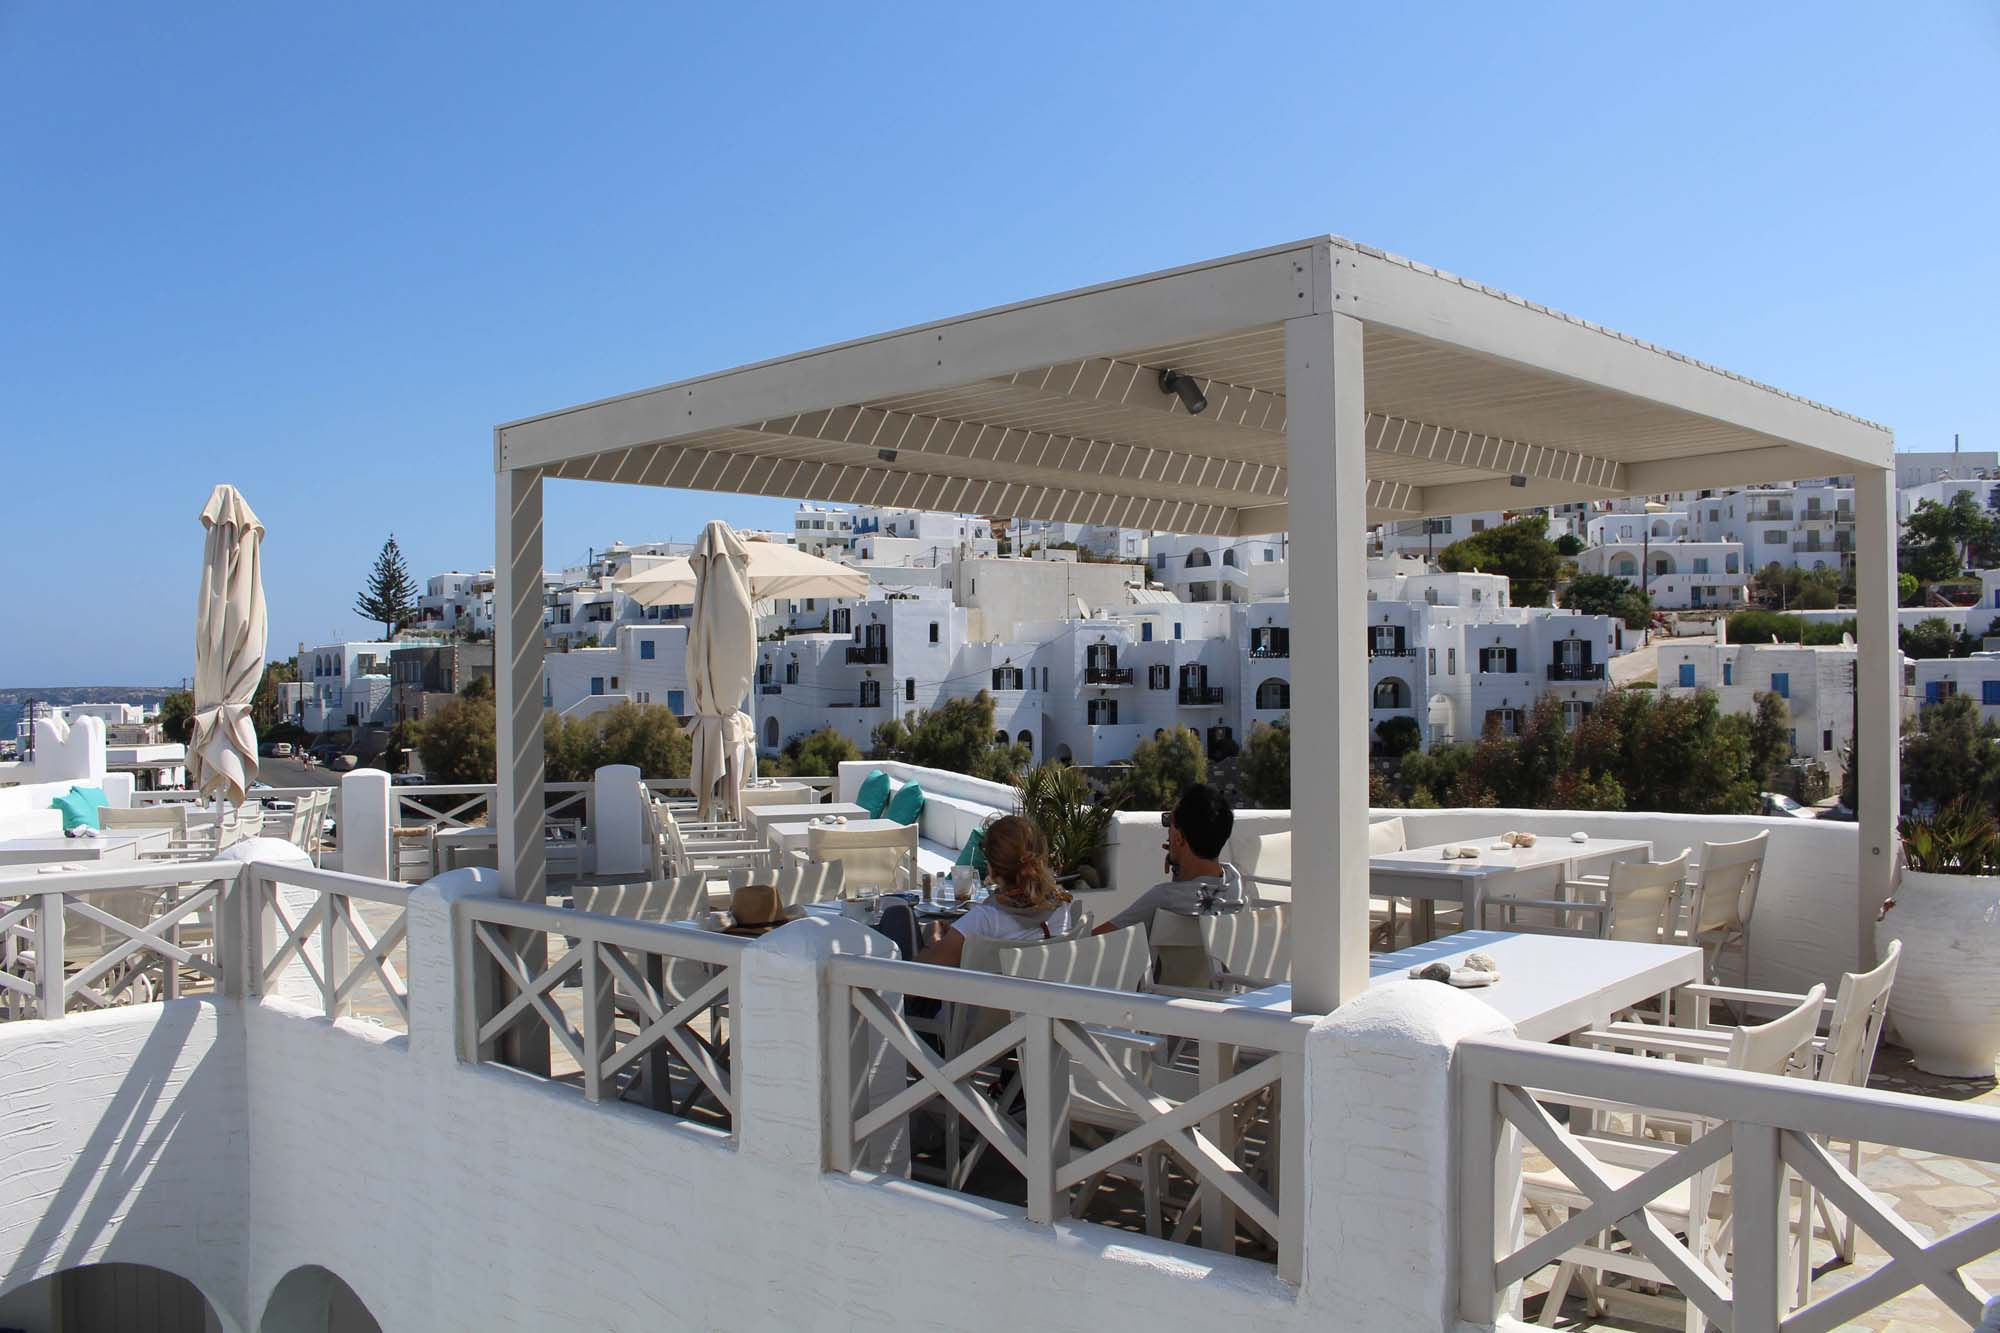 greece-paros-travel-linstantflo-2-sur-39